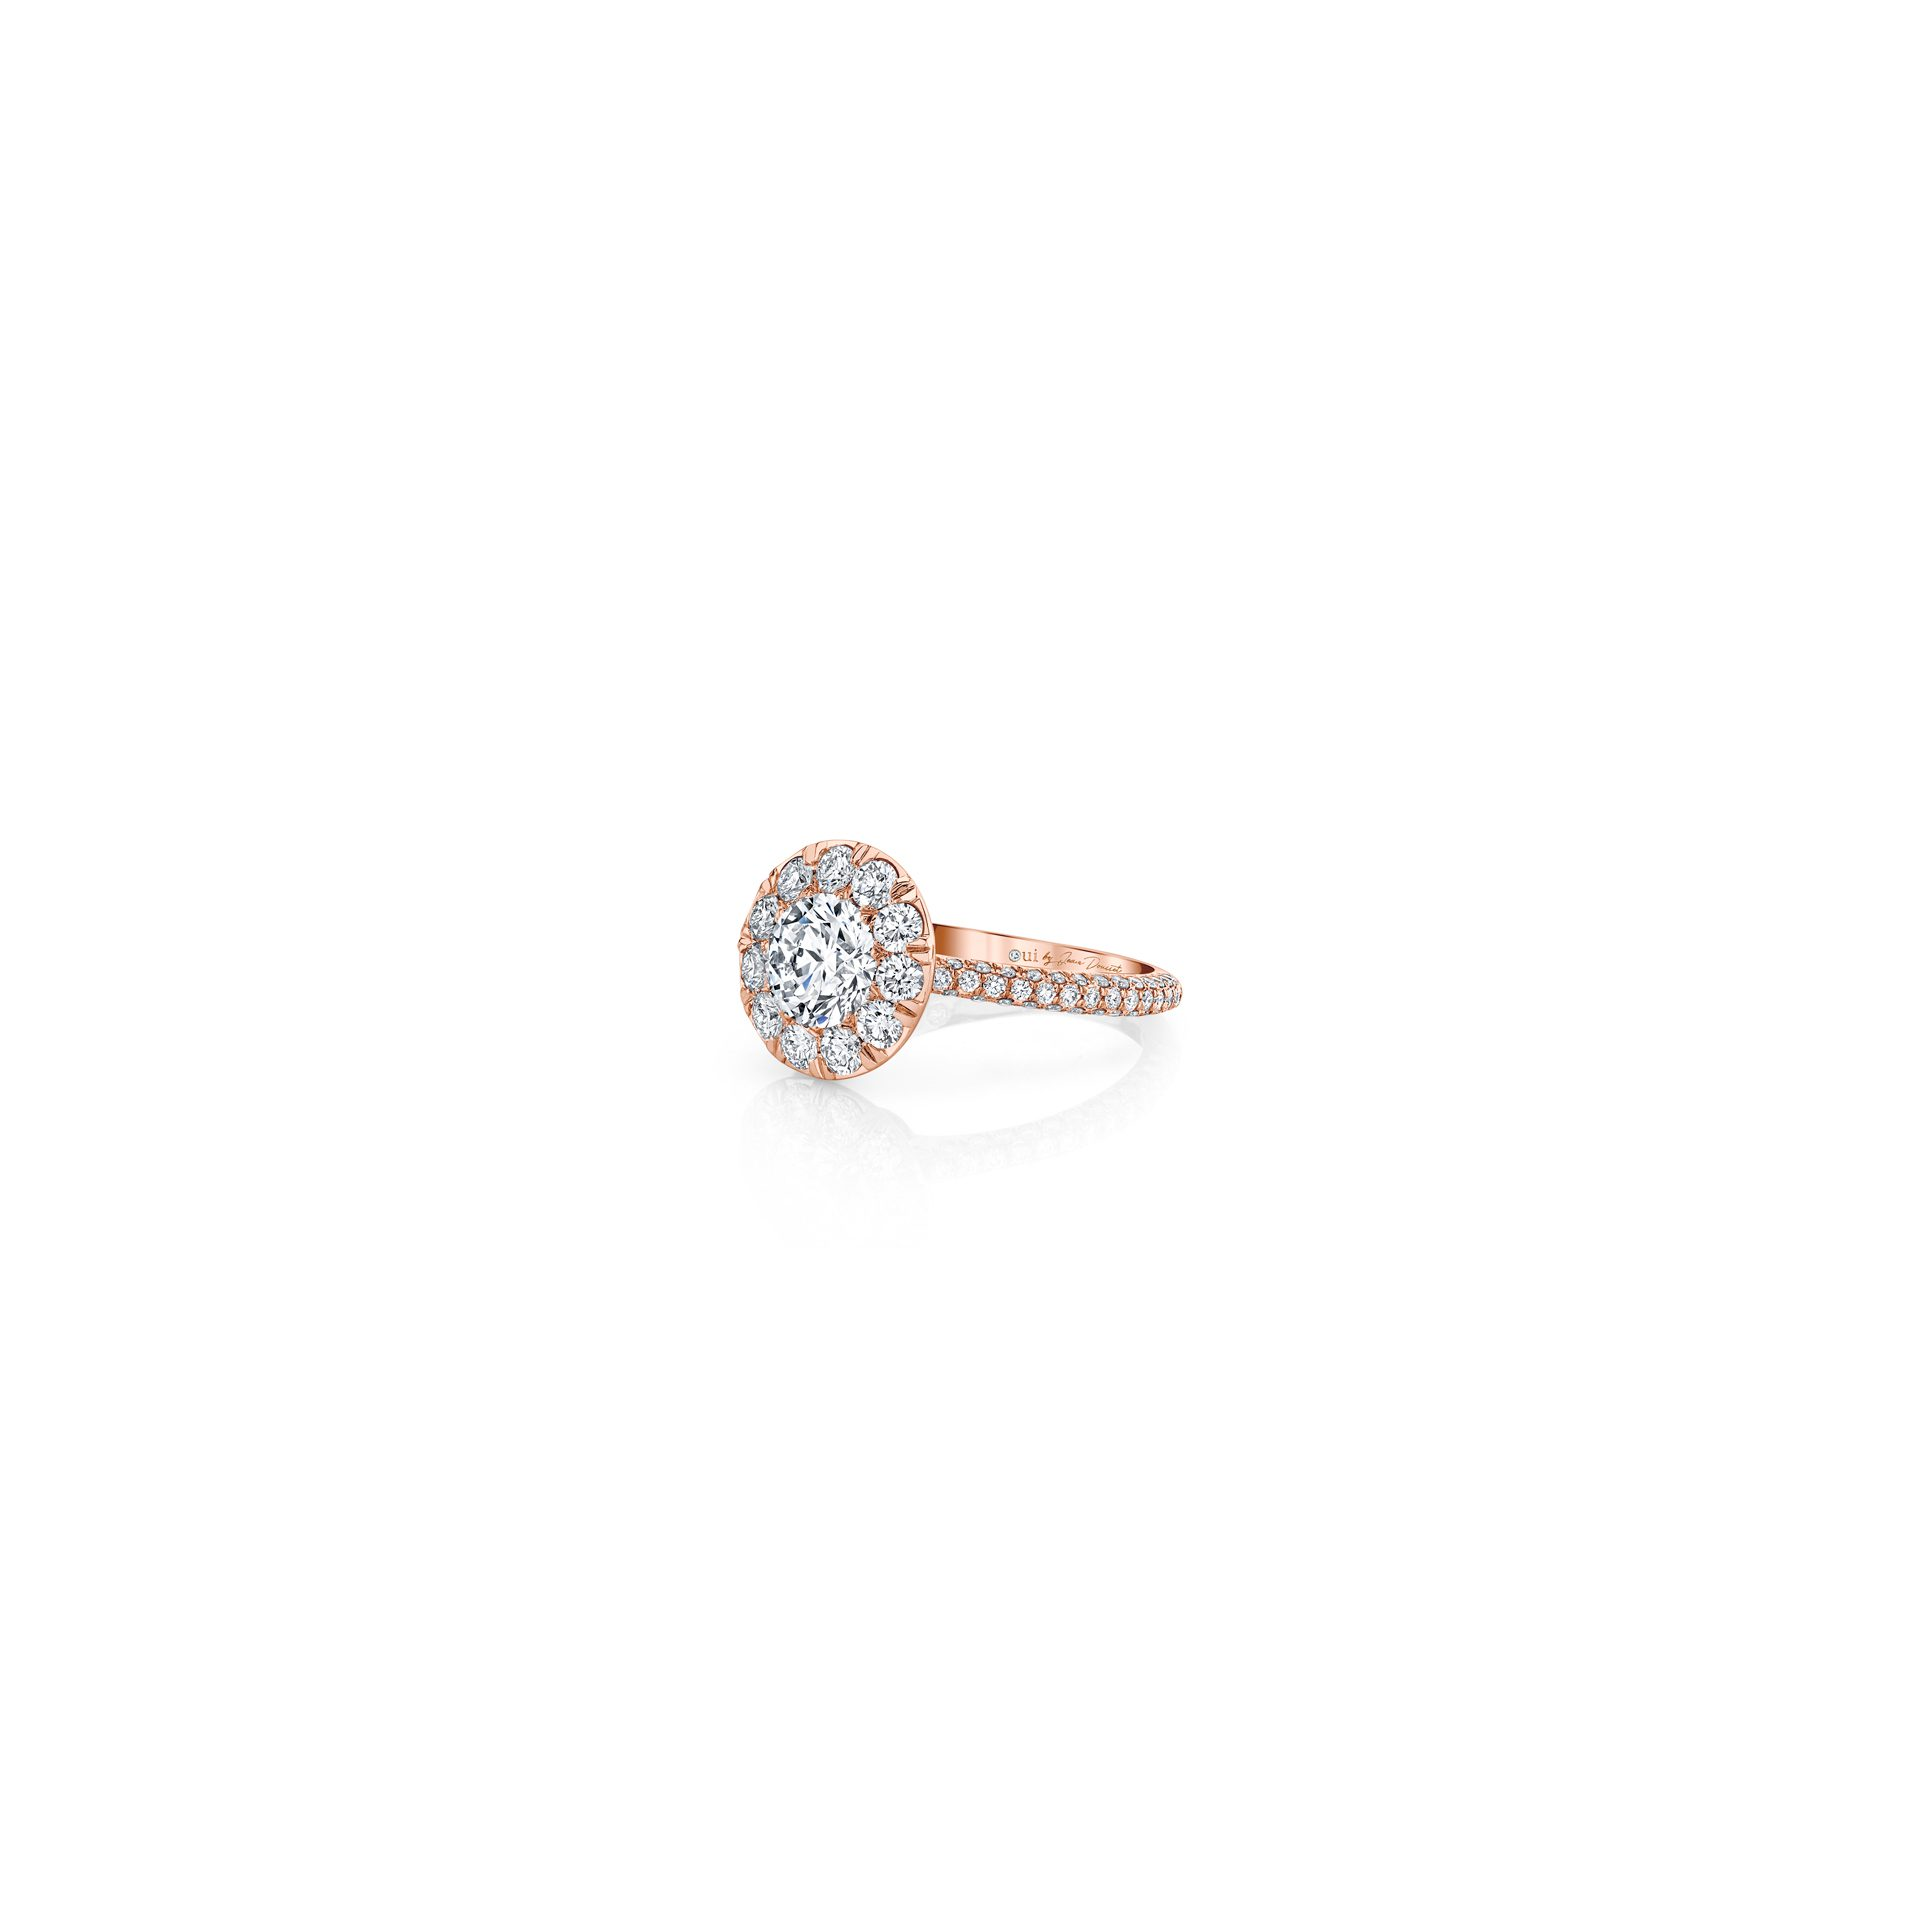 Jacqueline Round Brilliant Seamless Solitaire™ Engagement Ring with diamond pavé in 18k Rose Gold Side View by Oui by Jean Dousset